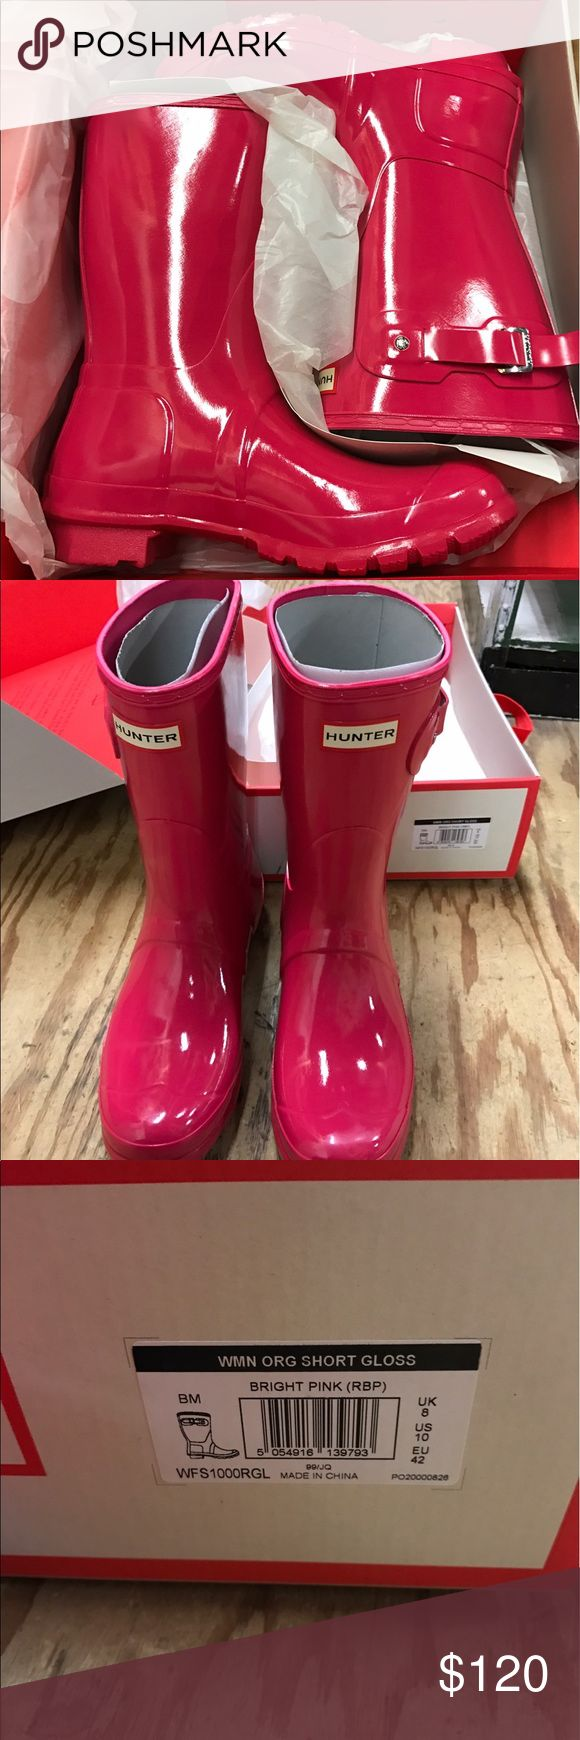 Women's Hunter Boots short gloss Bright Pink Brand new in box. Women's Hunter boots short gloss Bright Pink size 10. also have a ton of other hunter boots as well. Please feel free to send a message asking about a particular hunter Boot. I only carry the originals, and back adjustable. Hunter Shoes Winter & Rain Boots